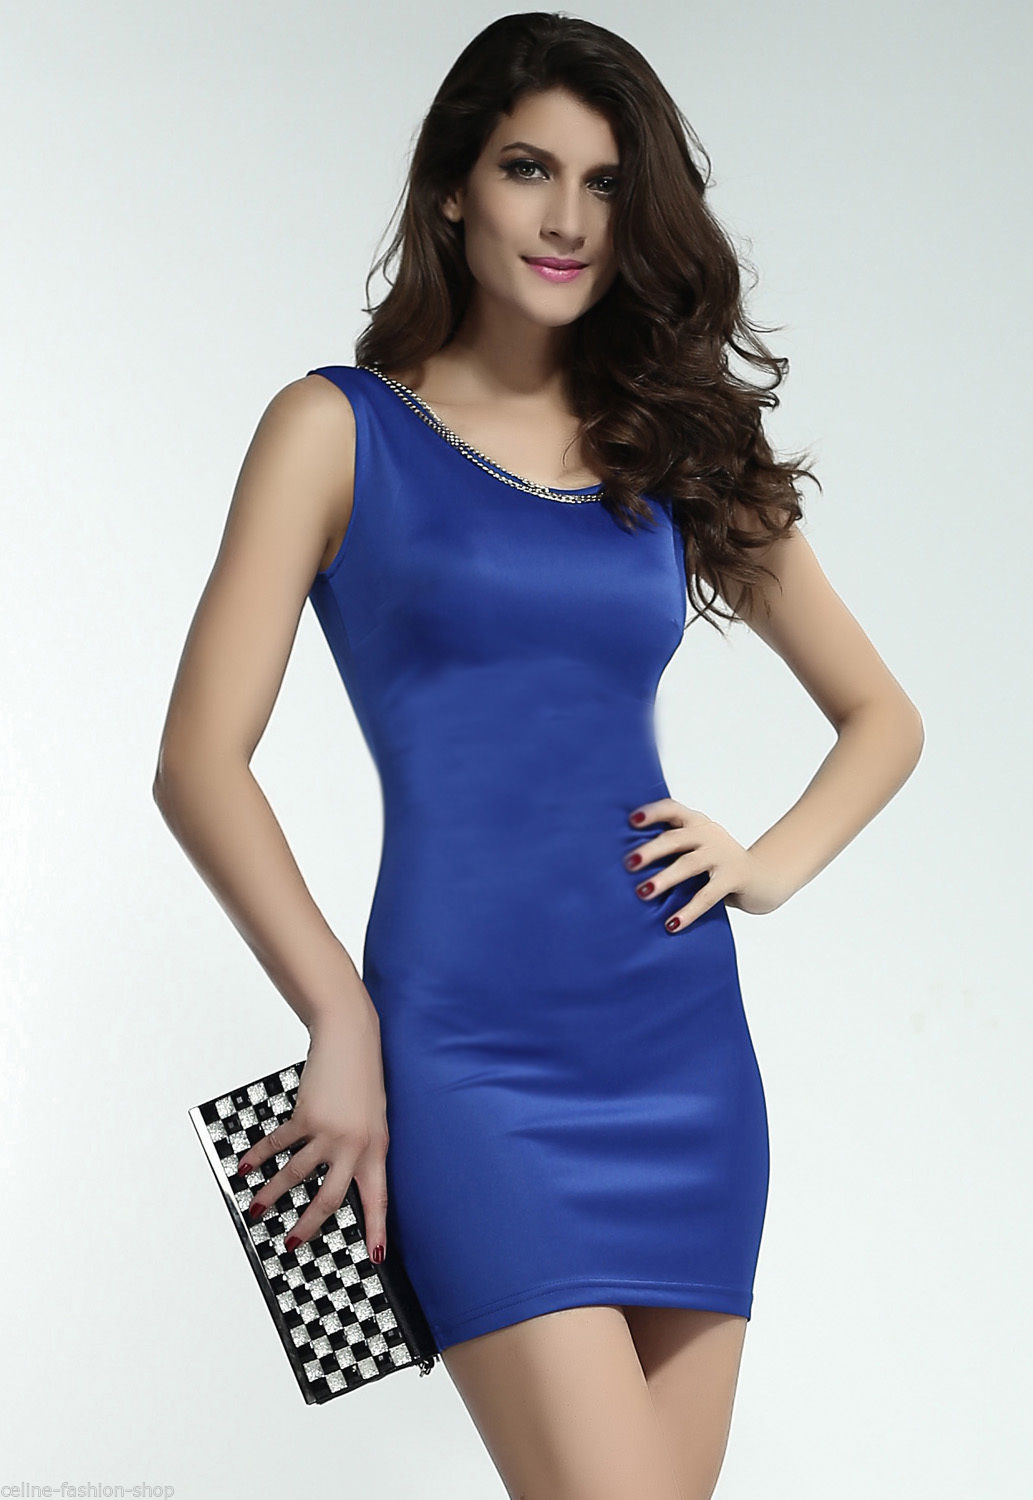 Fashion Sexy Pretty Clubwear Mini Clubwear Cocktail Party Blue Dress XL XXL | eBay